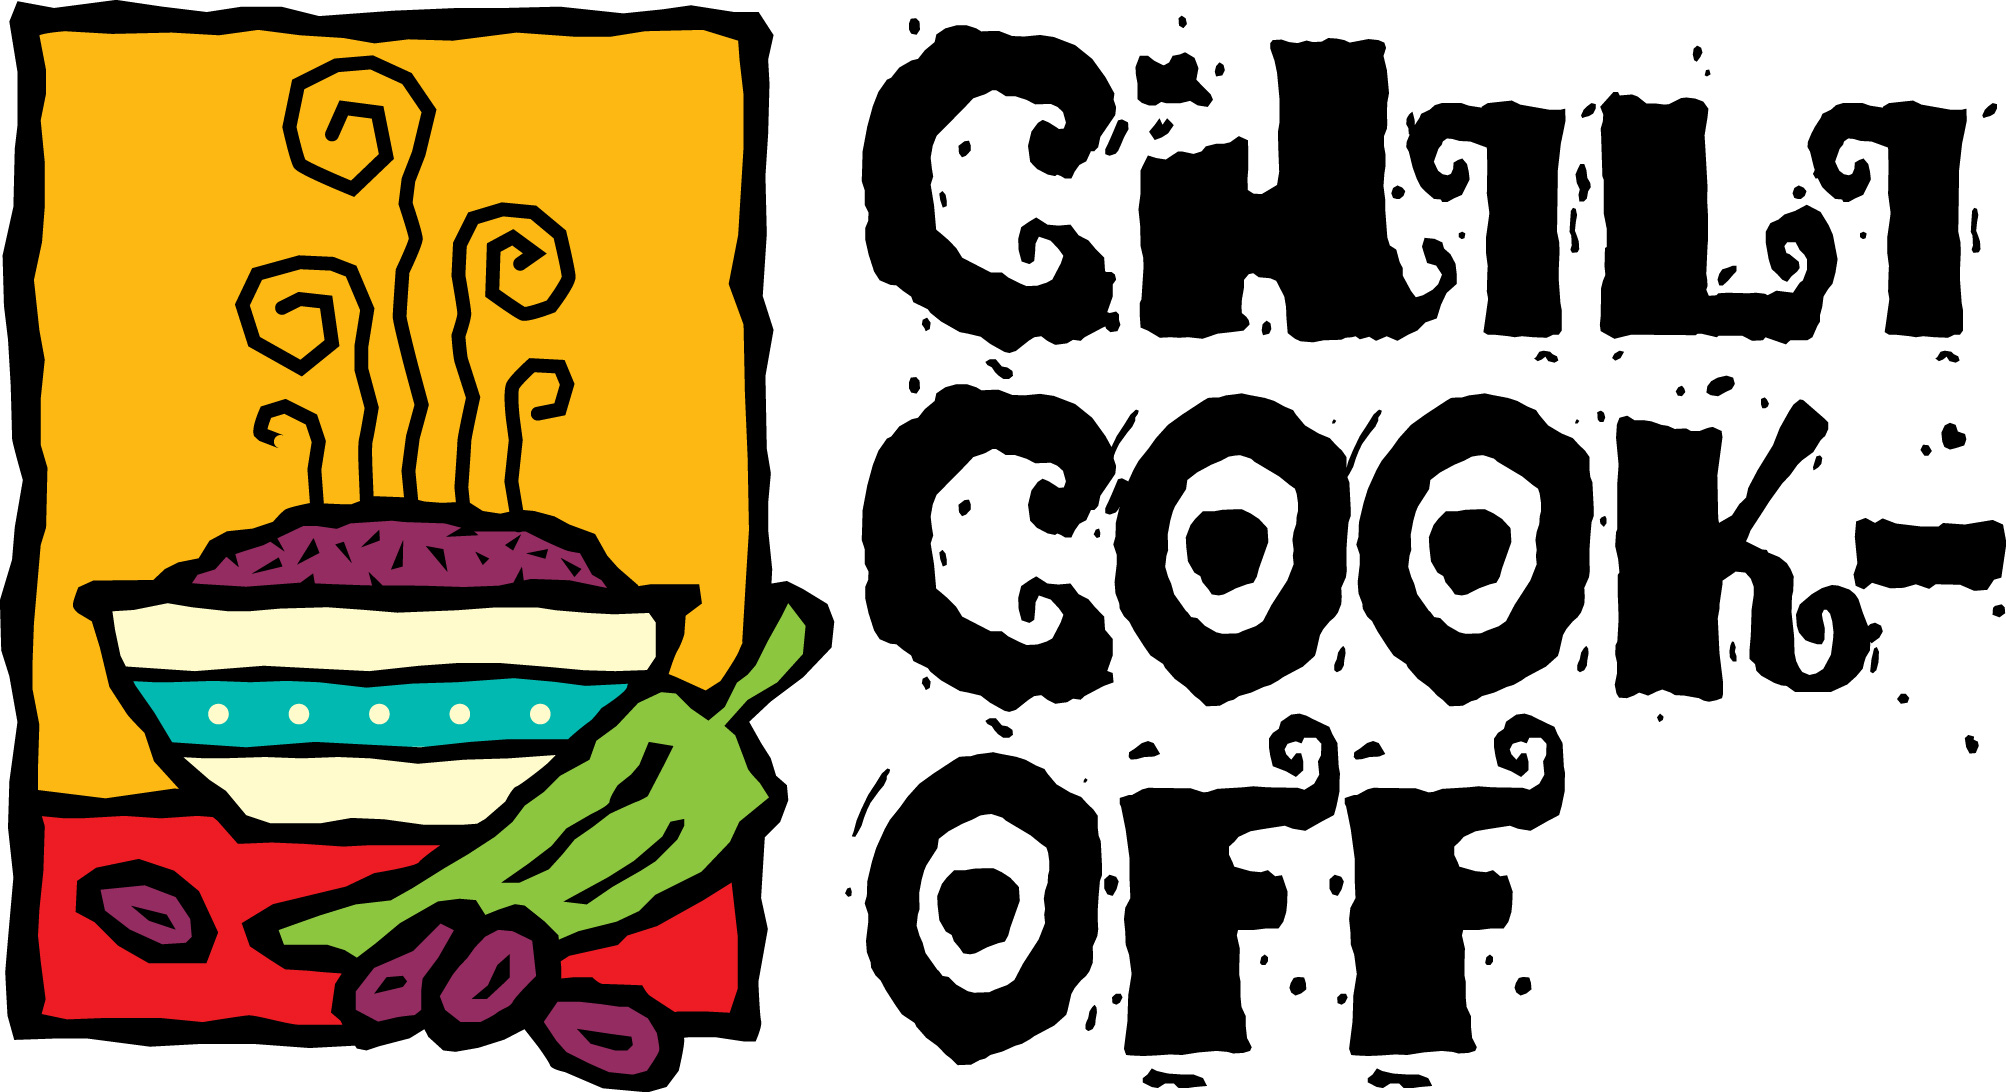 Chili Cook Off Borders Clipart ... A Var-Chili Cook Off Borders Clipart ... A Variety Of Chili Recipes .-5